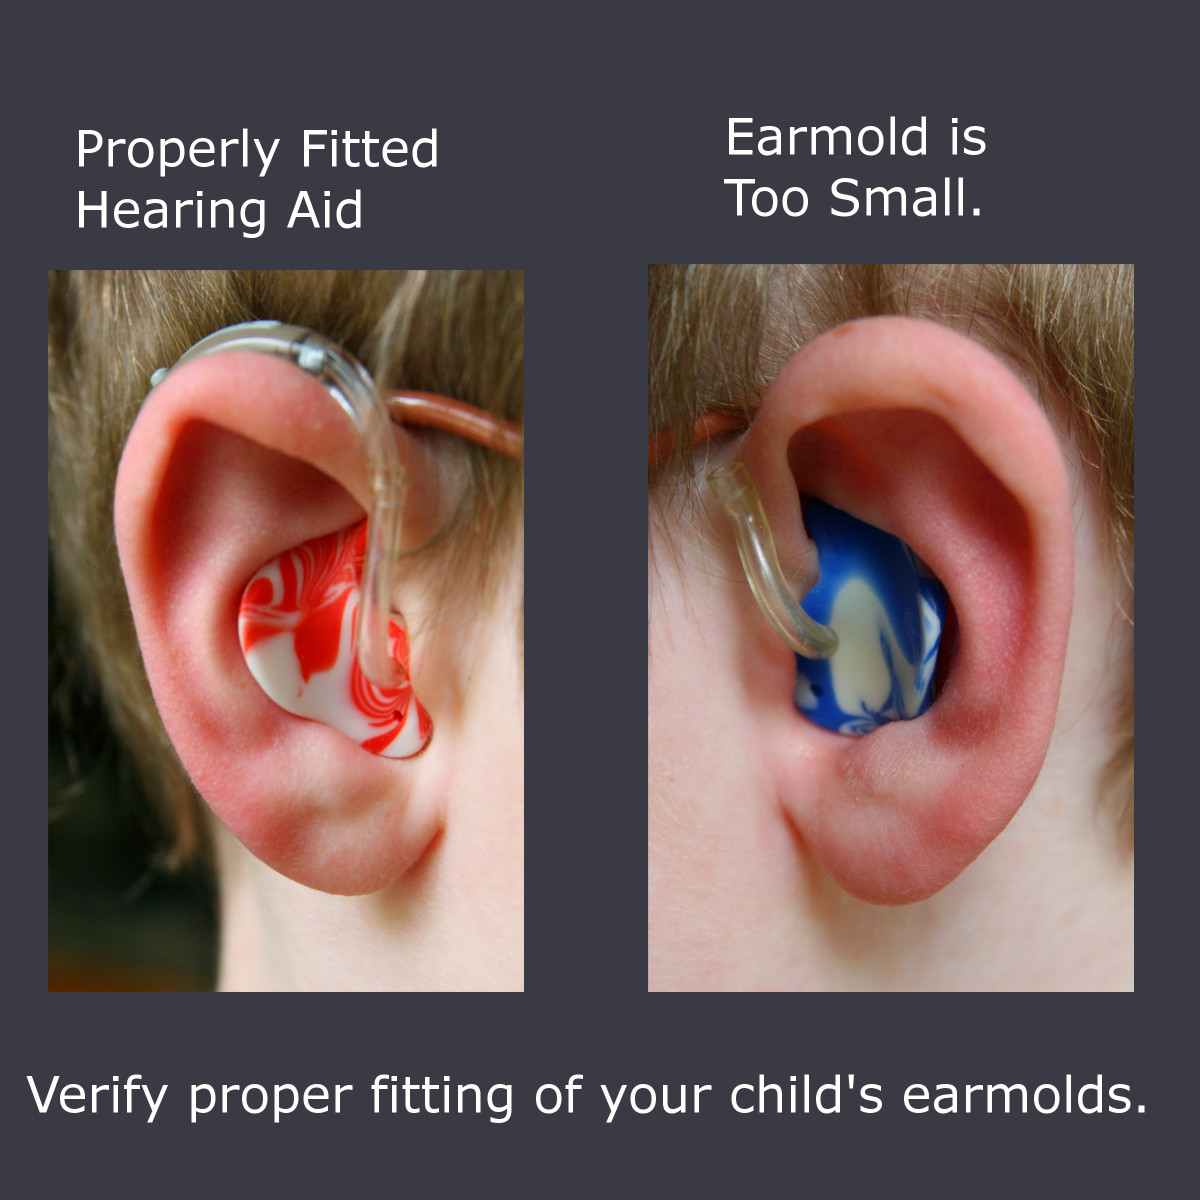 Make sure your child's hearing aids fit properly. The earmold on the left is properly fitted - the one on the right is too small and leaves a gap.